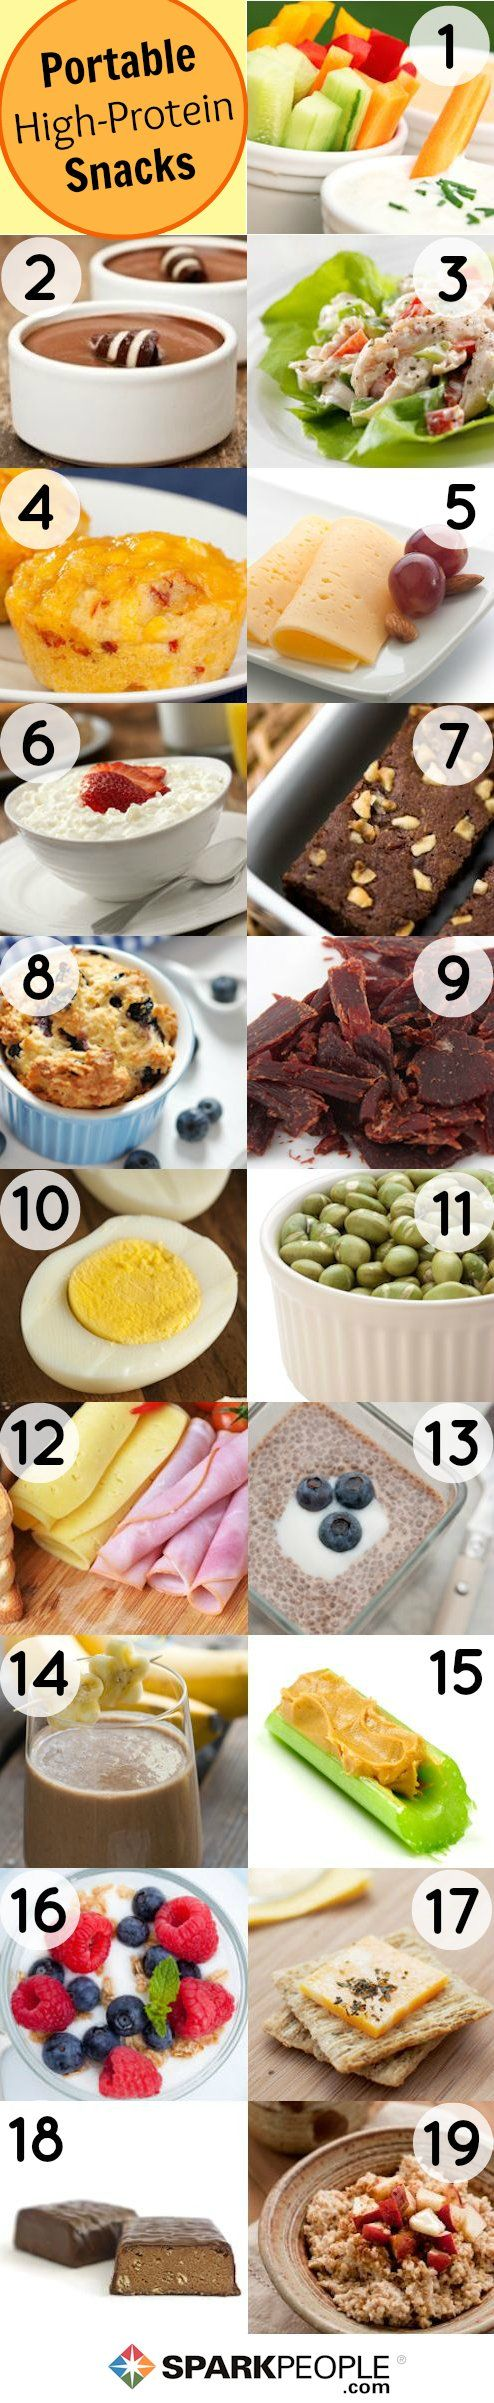 Protein snacks on the go 19 Portable Protein-Packed Snacks Take your (grain-free alternative ) protein to go with these quick and hearty bites.